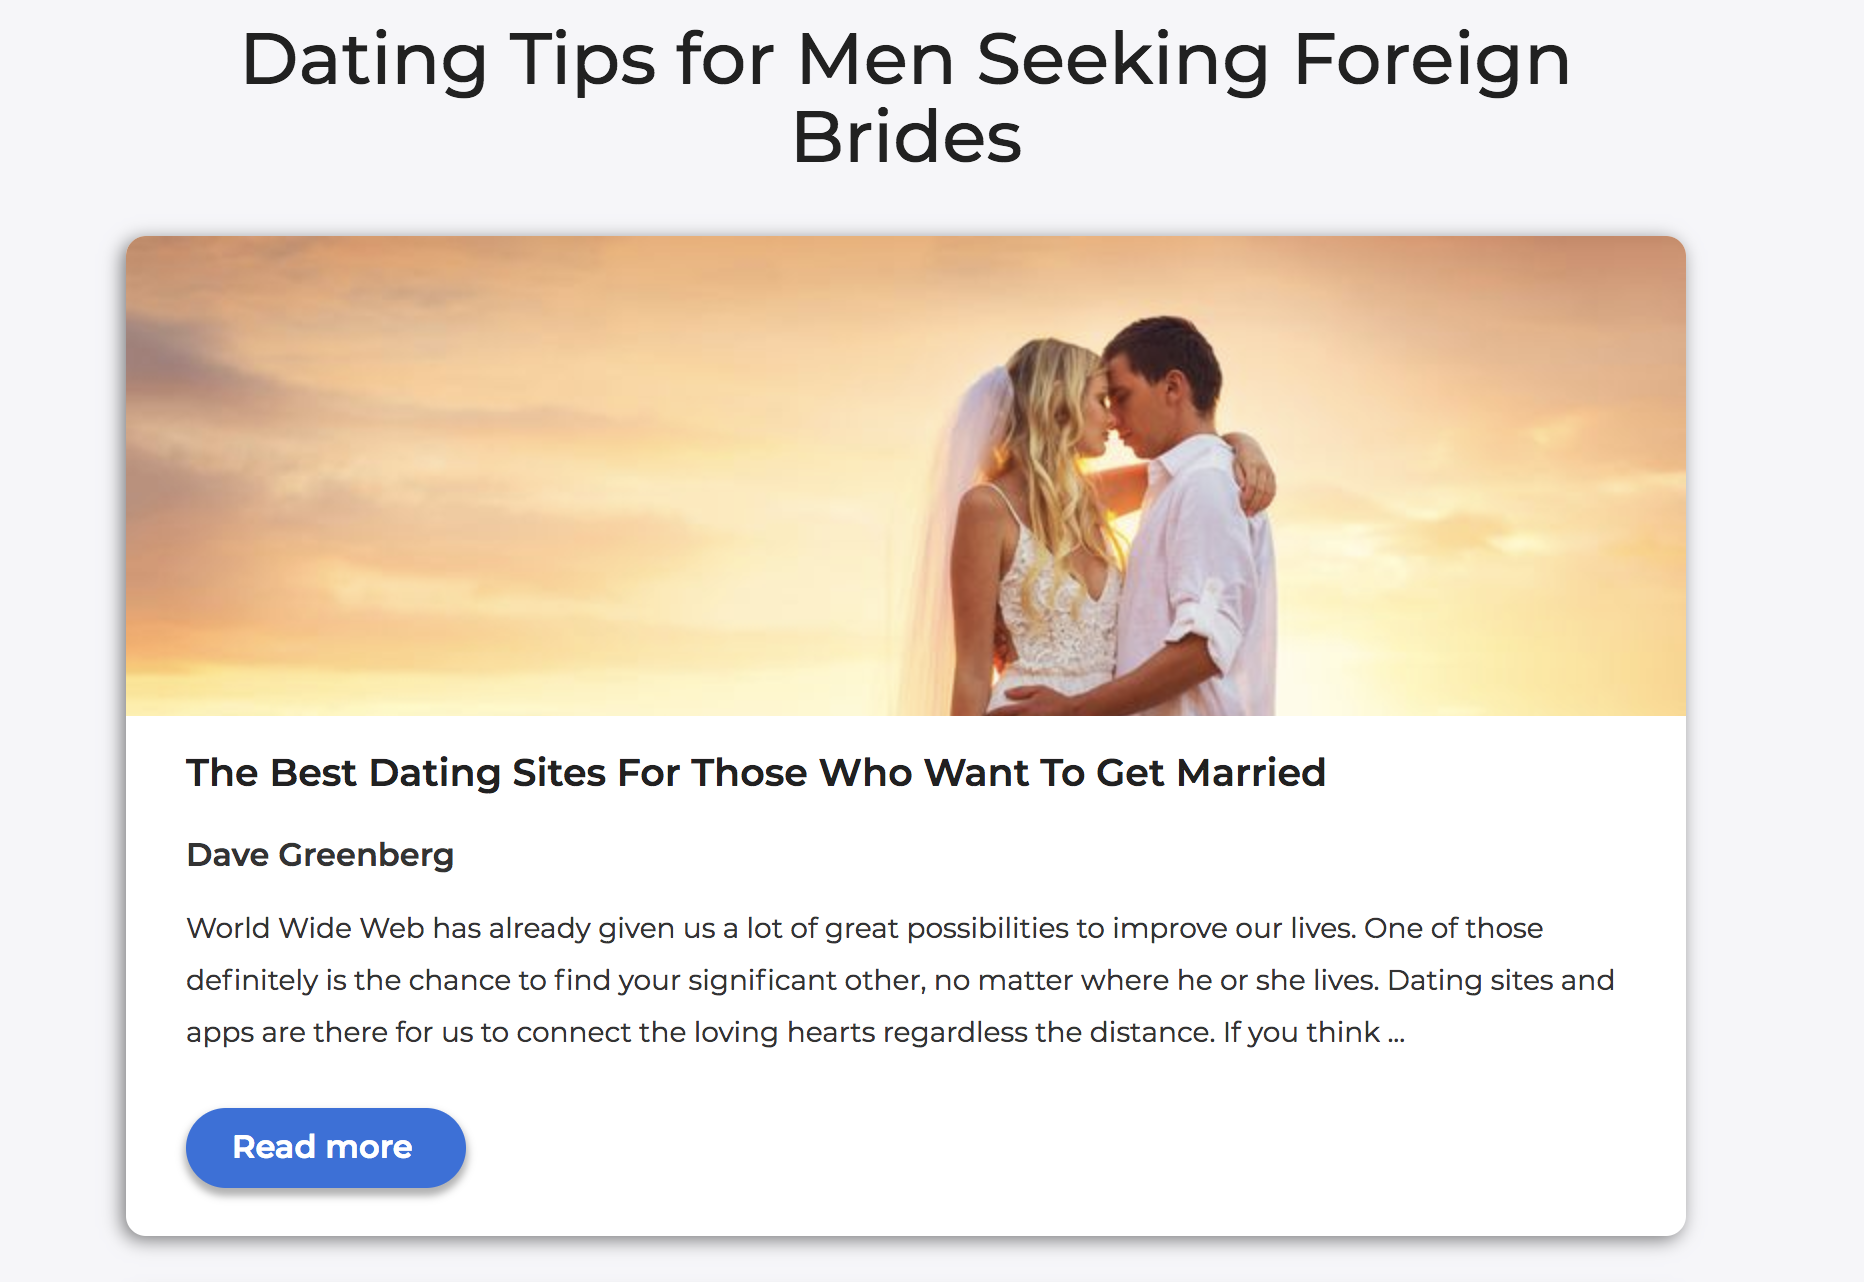 Dating site for those who want to get married